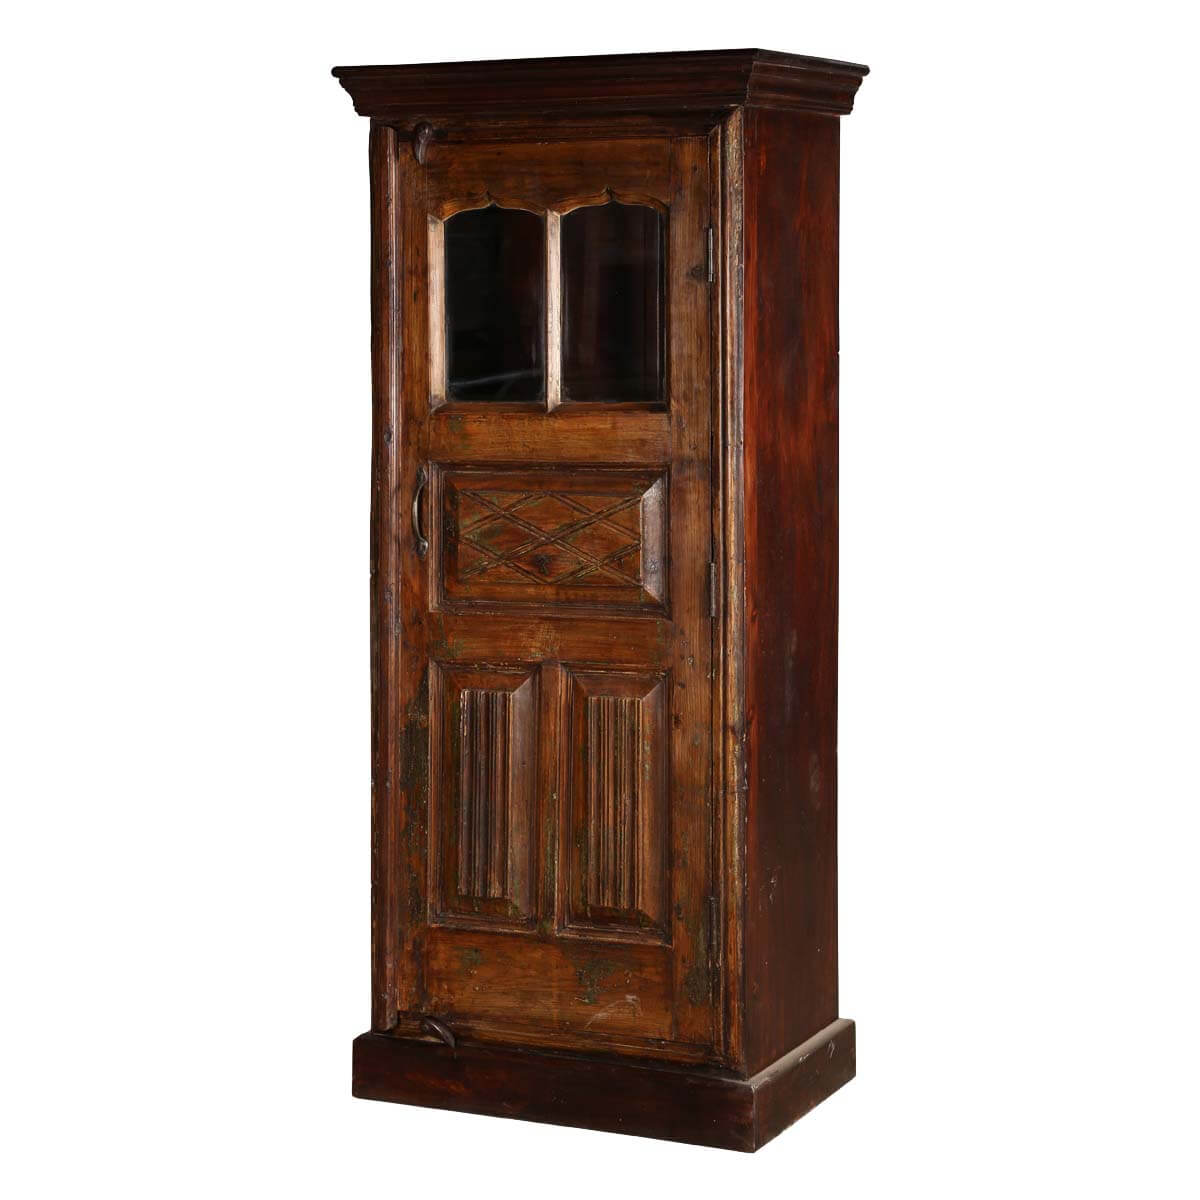 Traditional Freestanding Mango Wood Narrow Armoire With Shelves